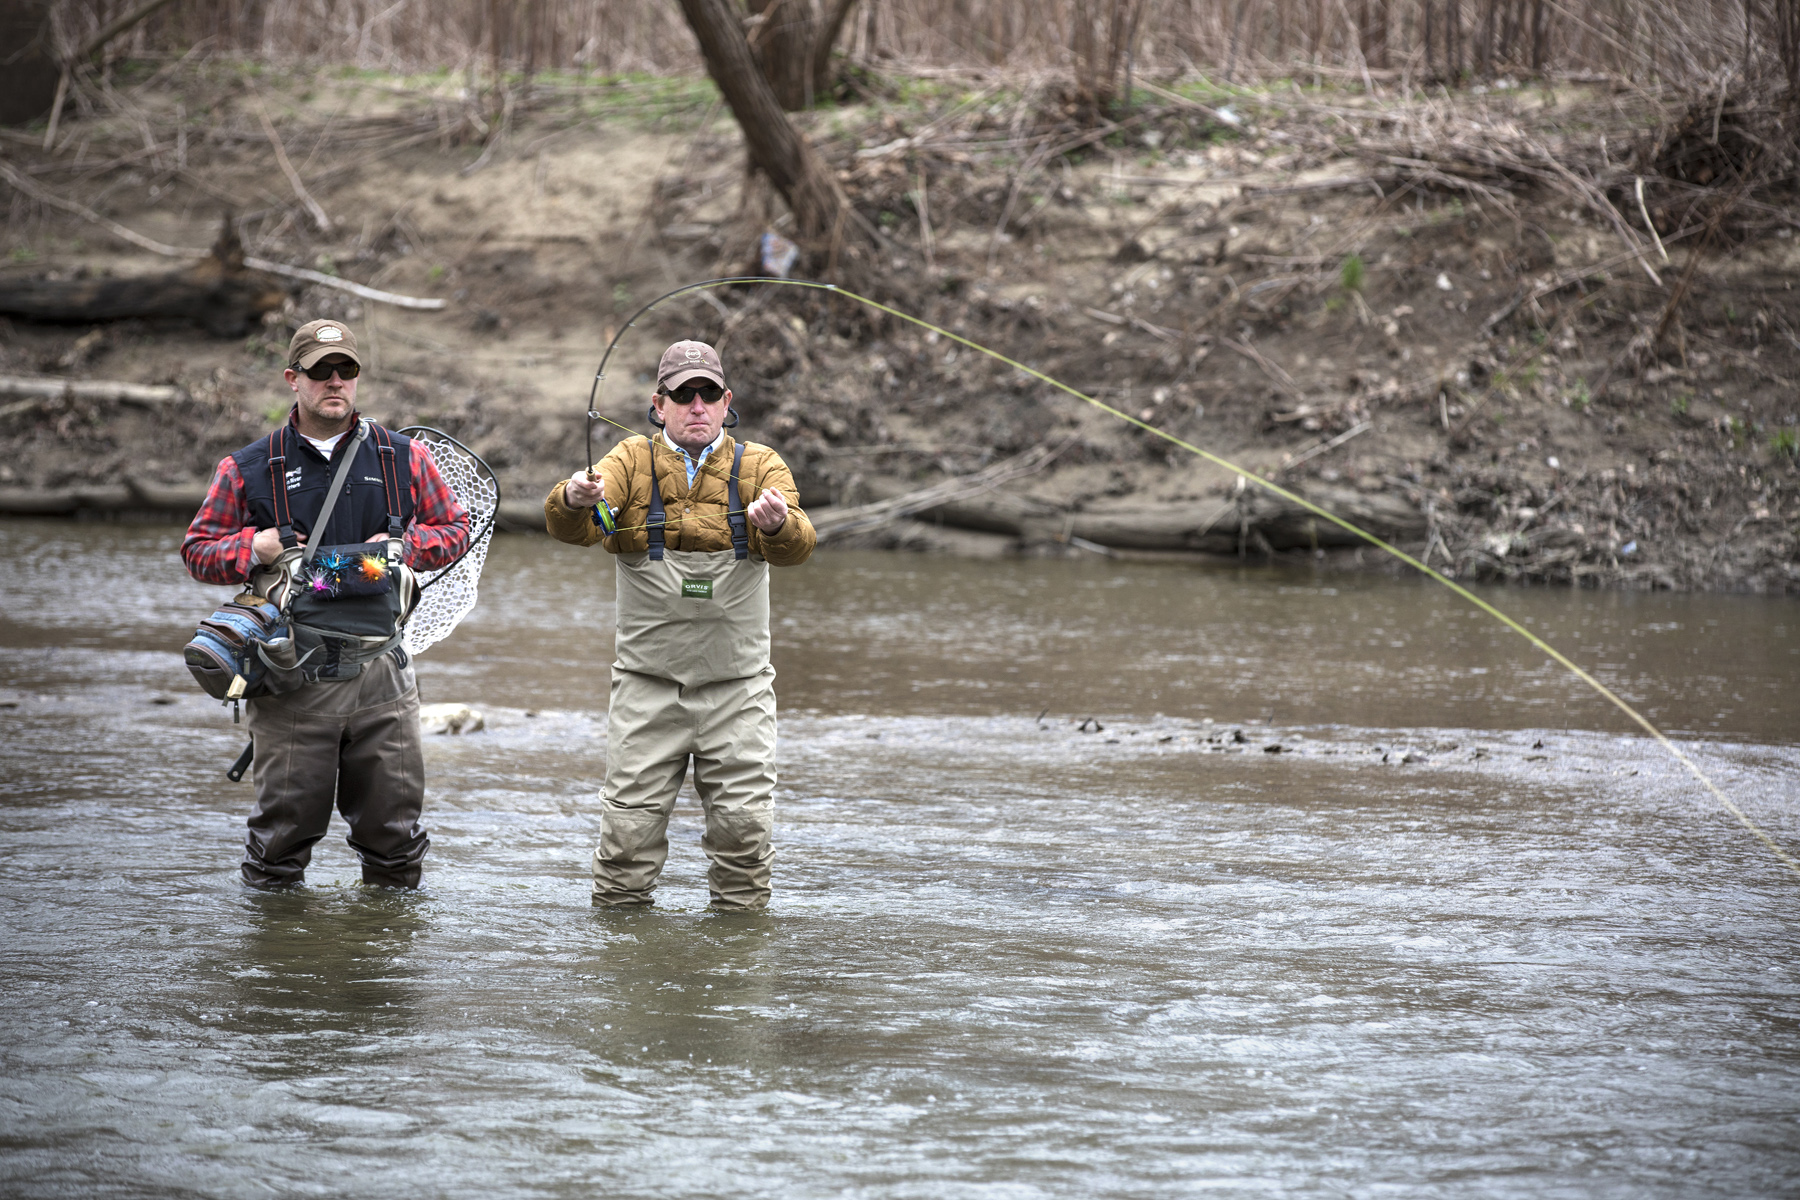 Fly fishing the chagrin river in ohio american rivers tour for Fly fishing ohio